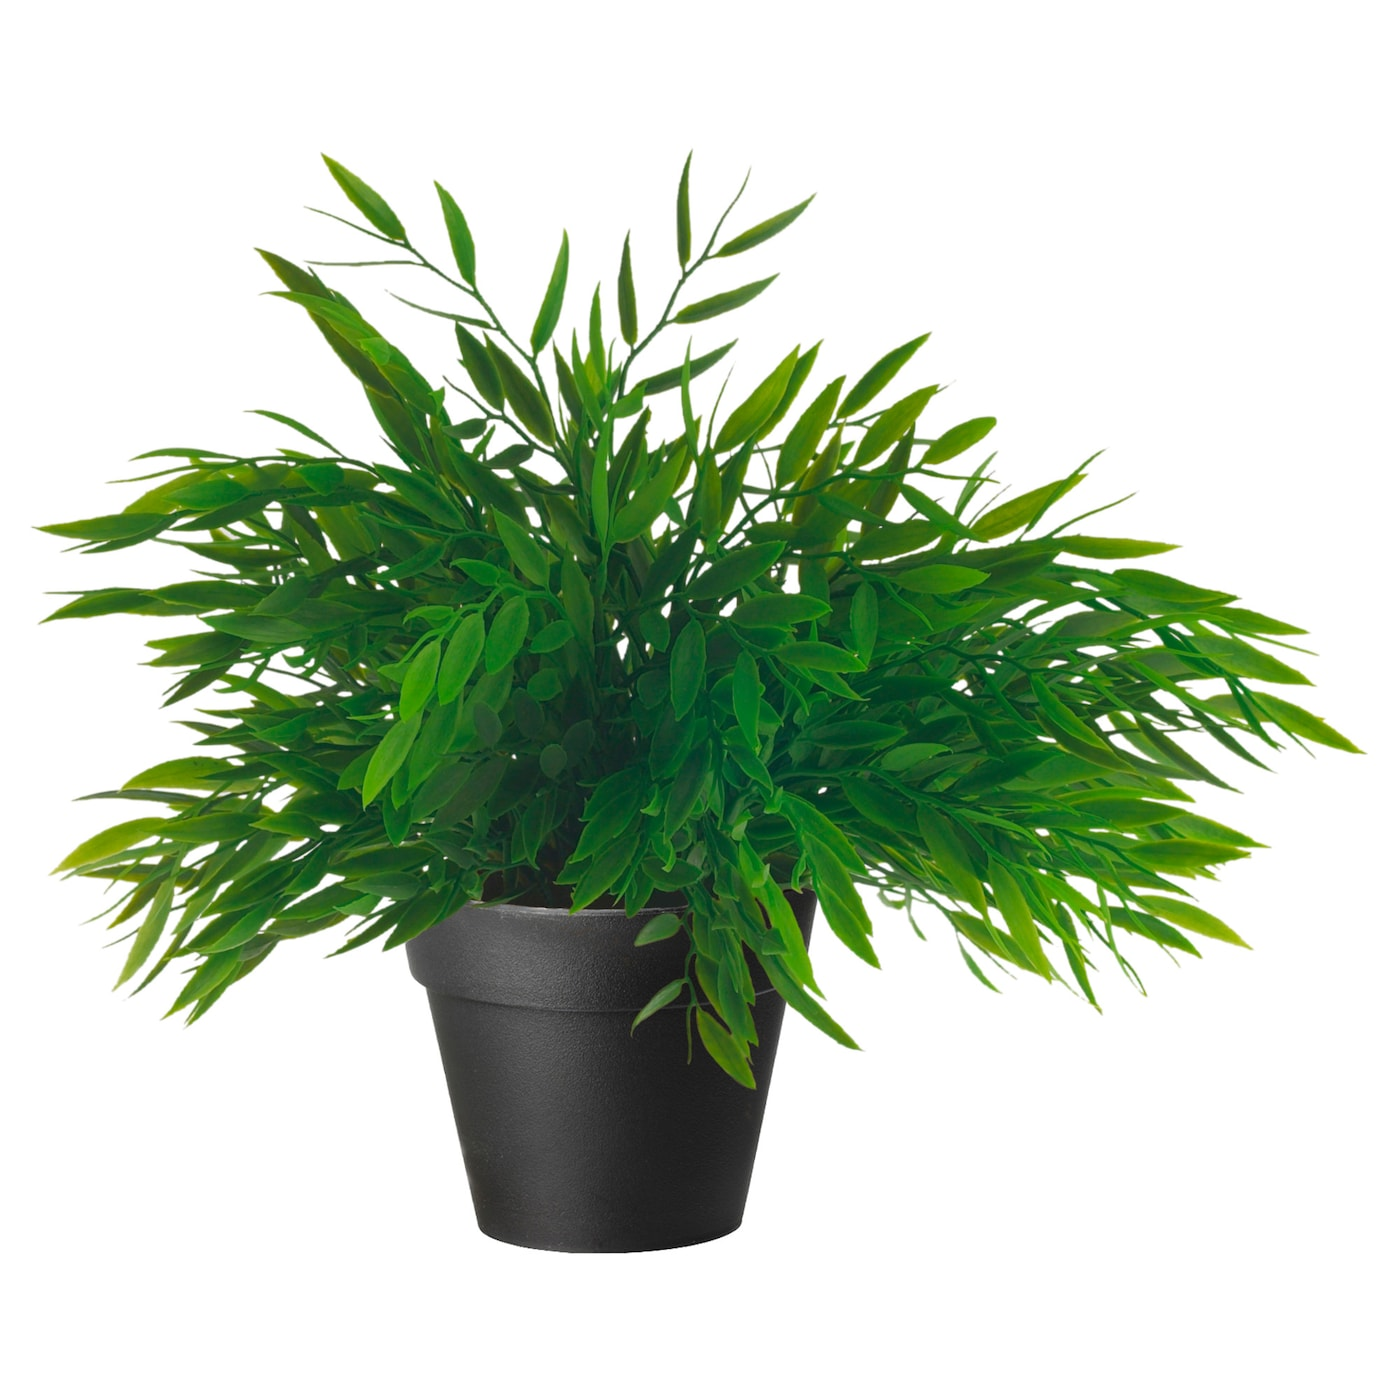 Fejka plante artificielle en pot bambou d 39 int rieur 10 cm for Pot plantes interieur